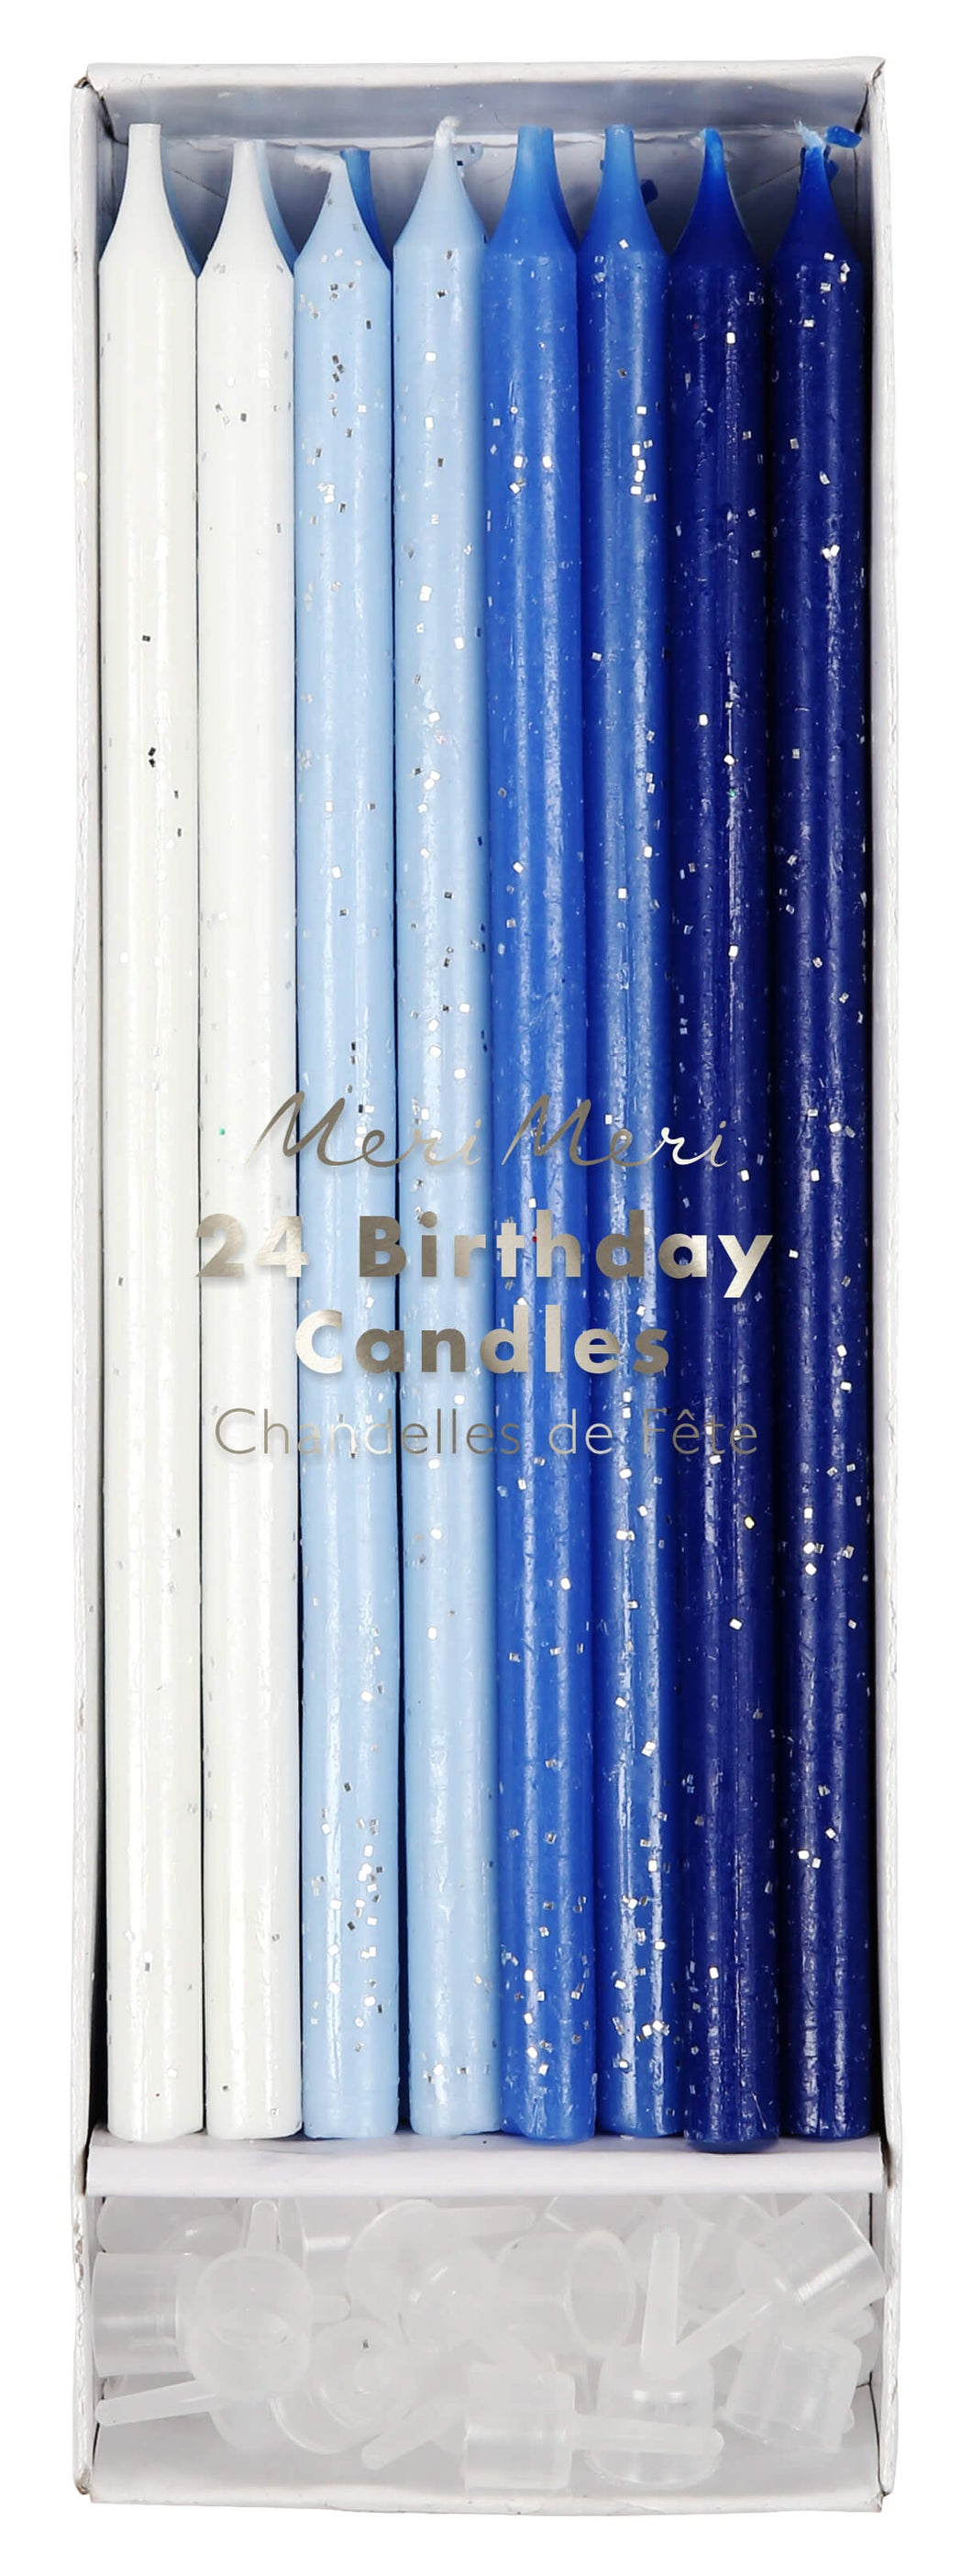 Long Sparkling Ombre Blue Cake Candles - Meri Meri